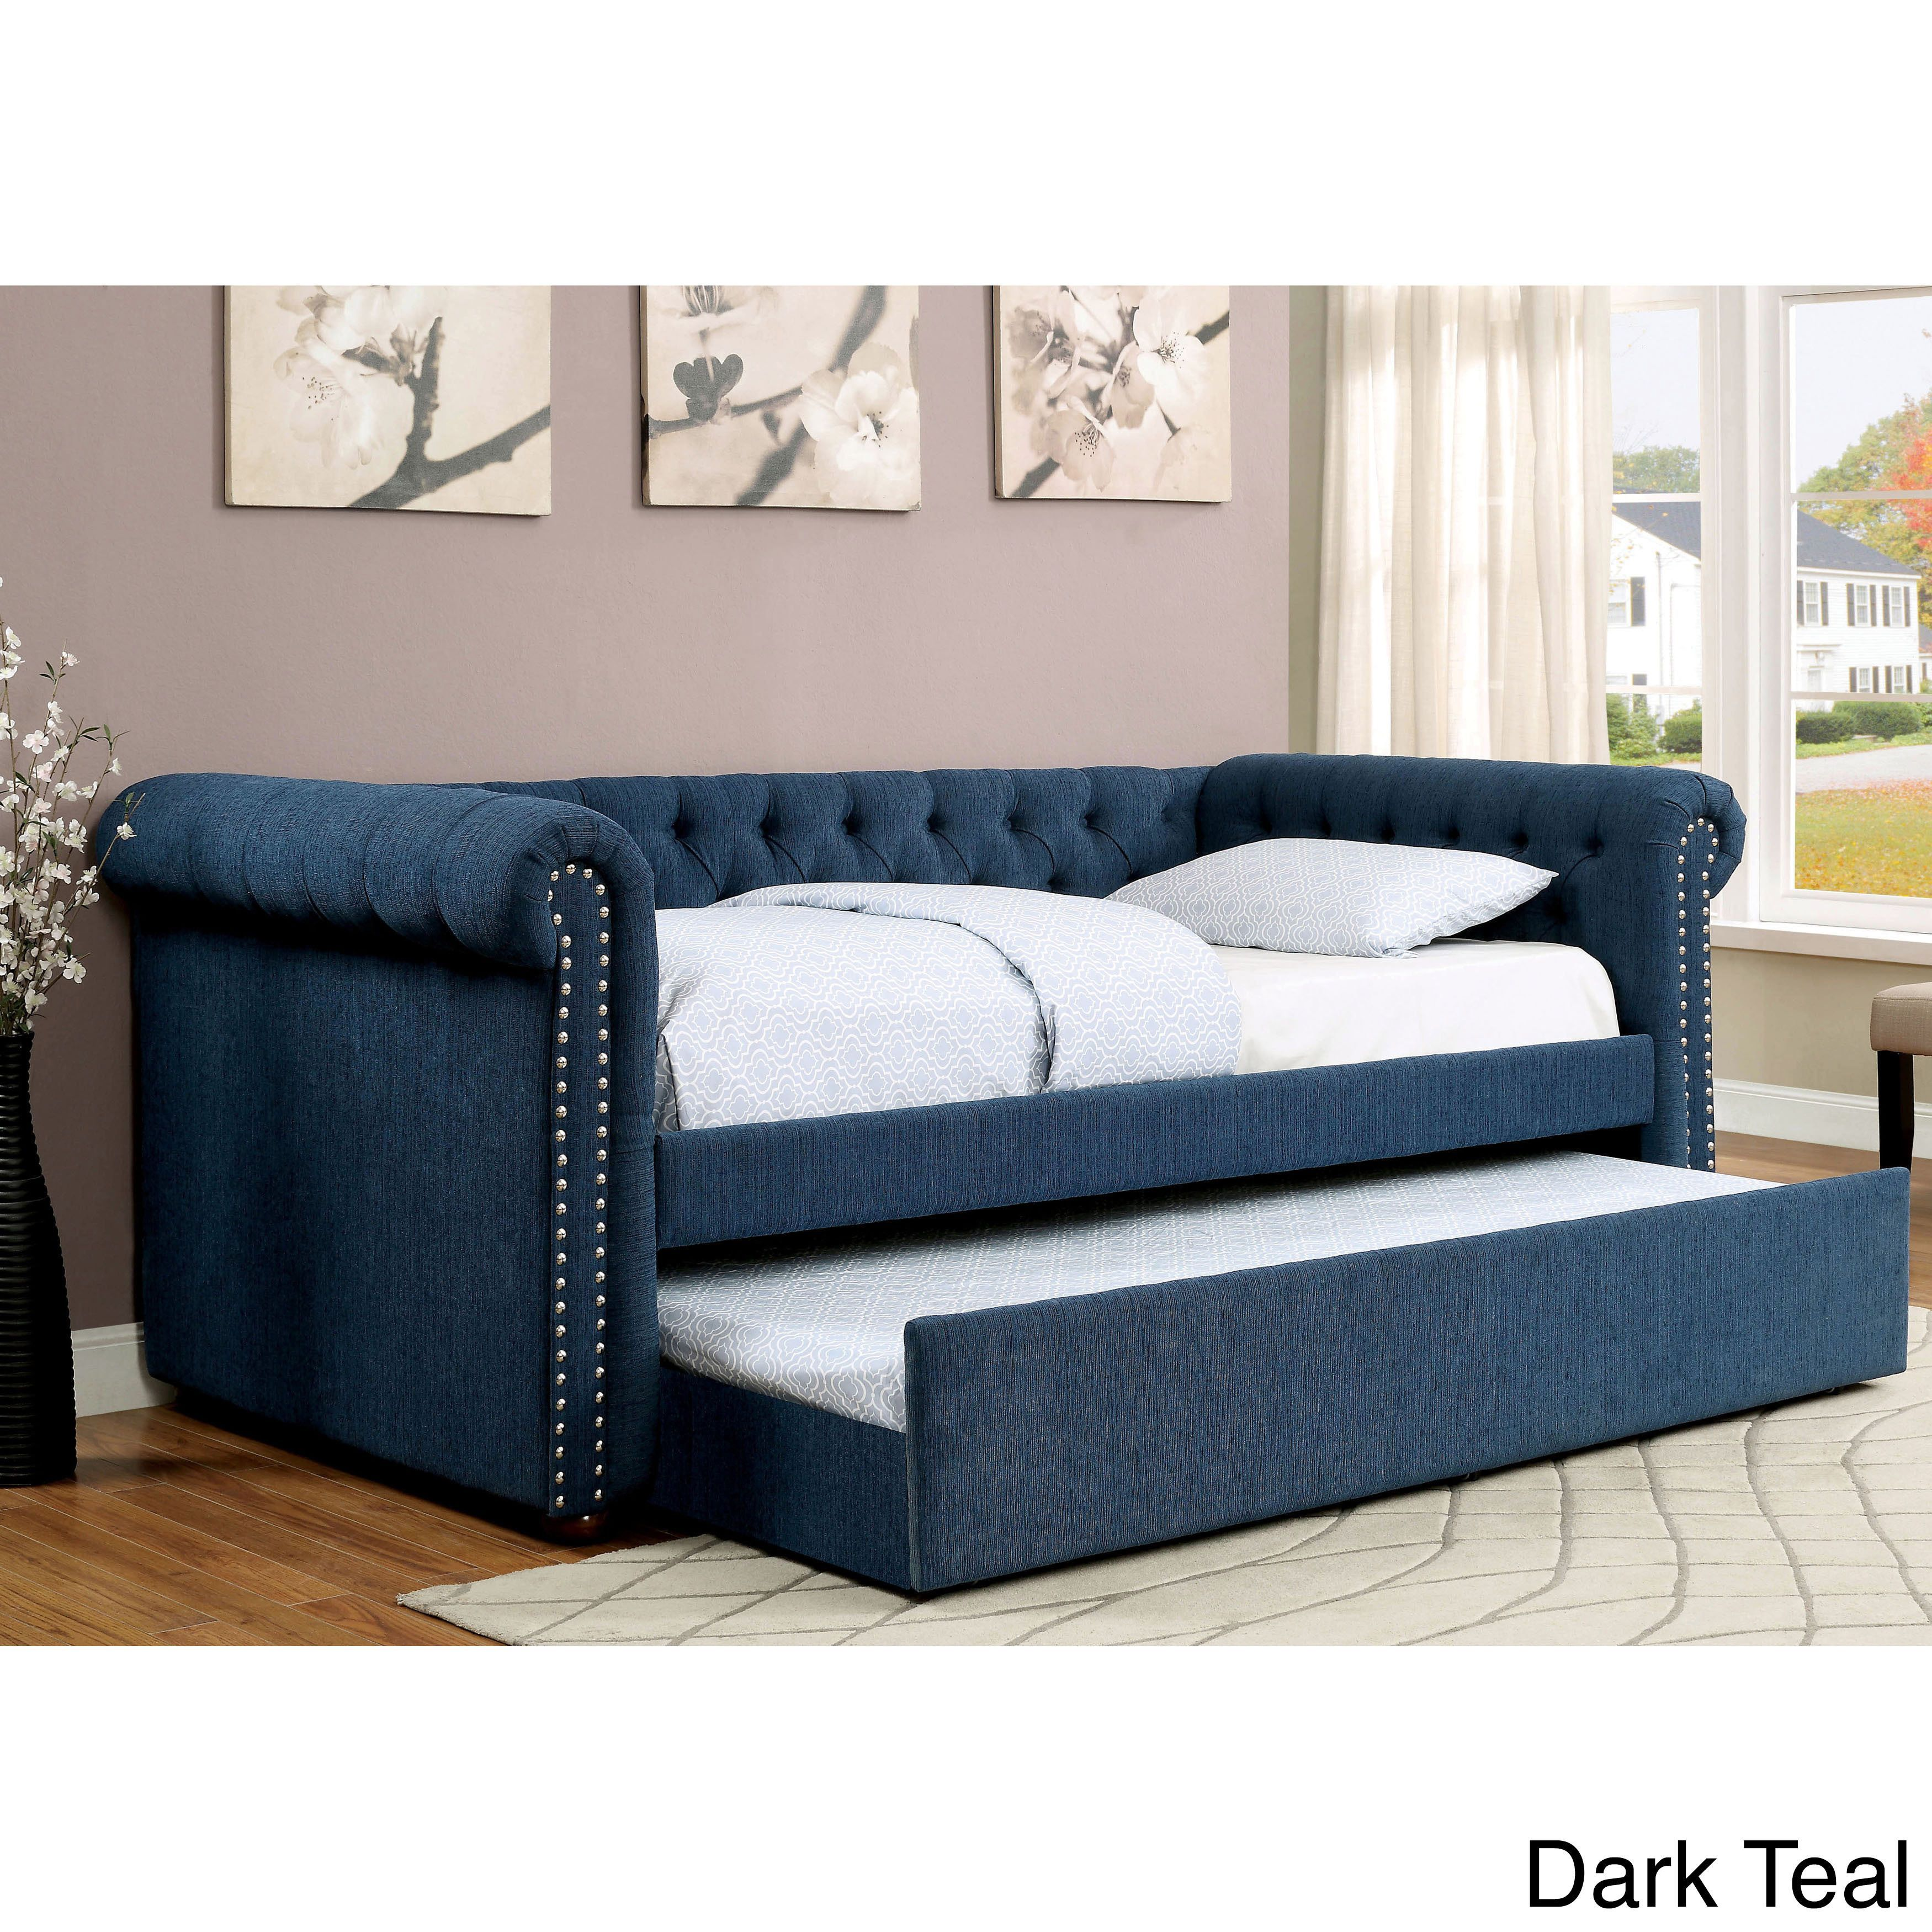 Furniture Of America Nellie Tuxedo Style Tufted Flax Daybed